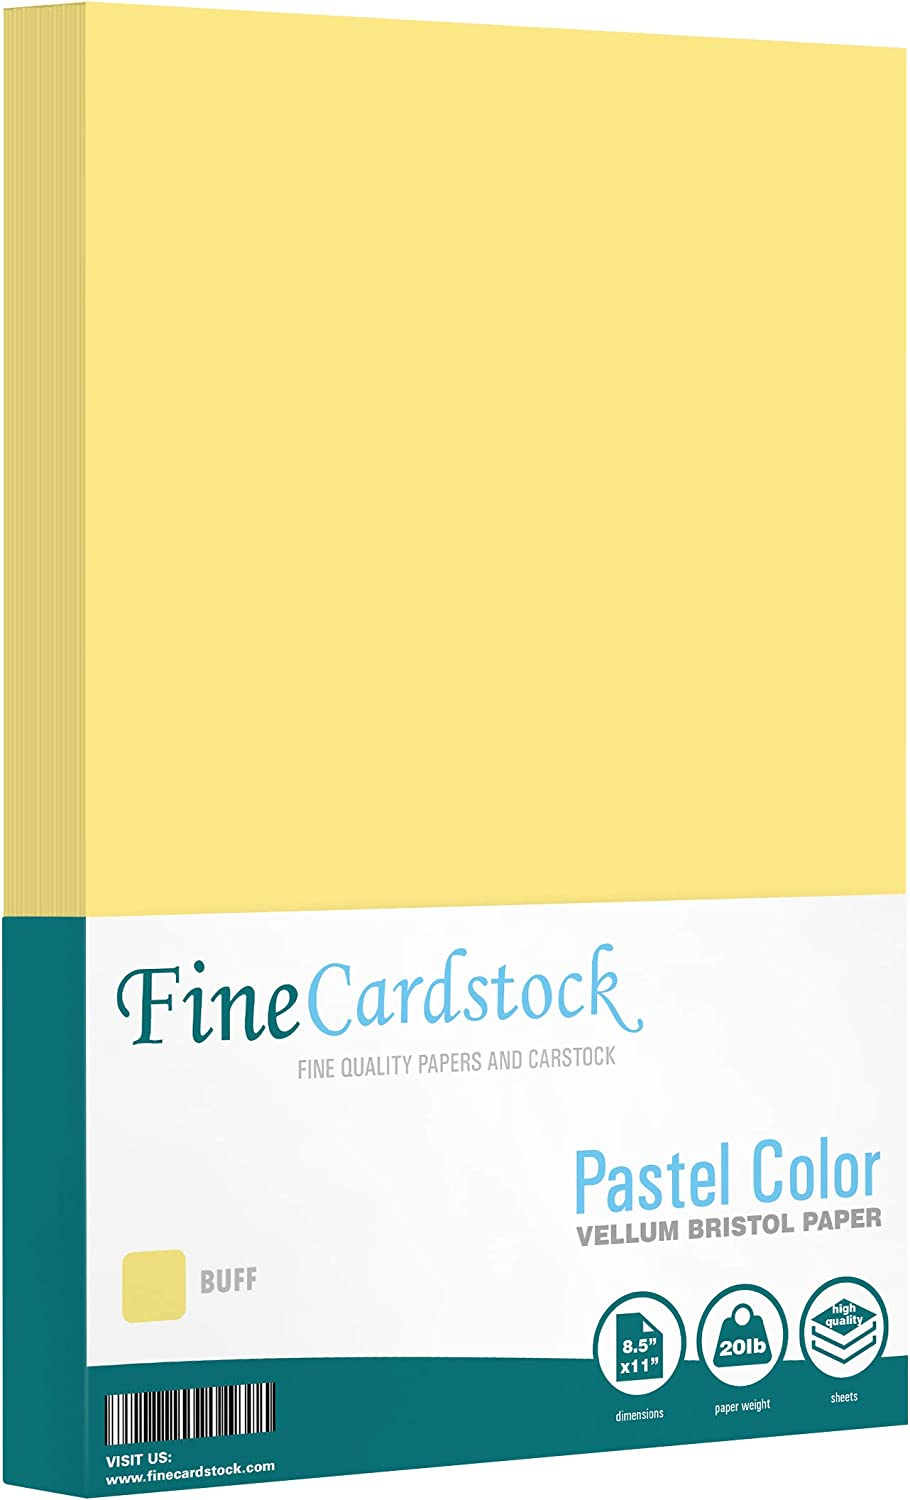 """Lightweight 20lb Paper Blue Great for Cards and Stationery Printing Menu Size Legal 100 Sheets 8.5 x 14/"""" Pastel Color Paper"""